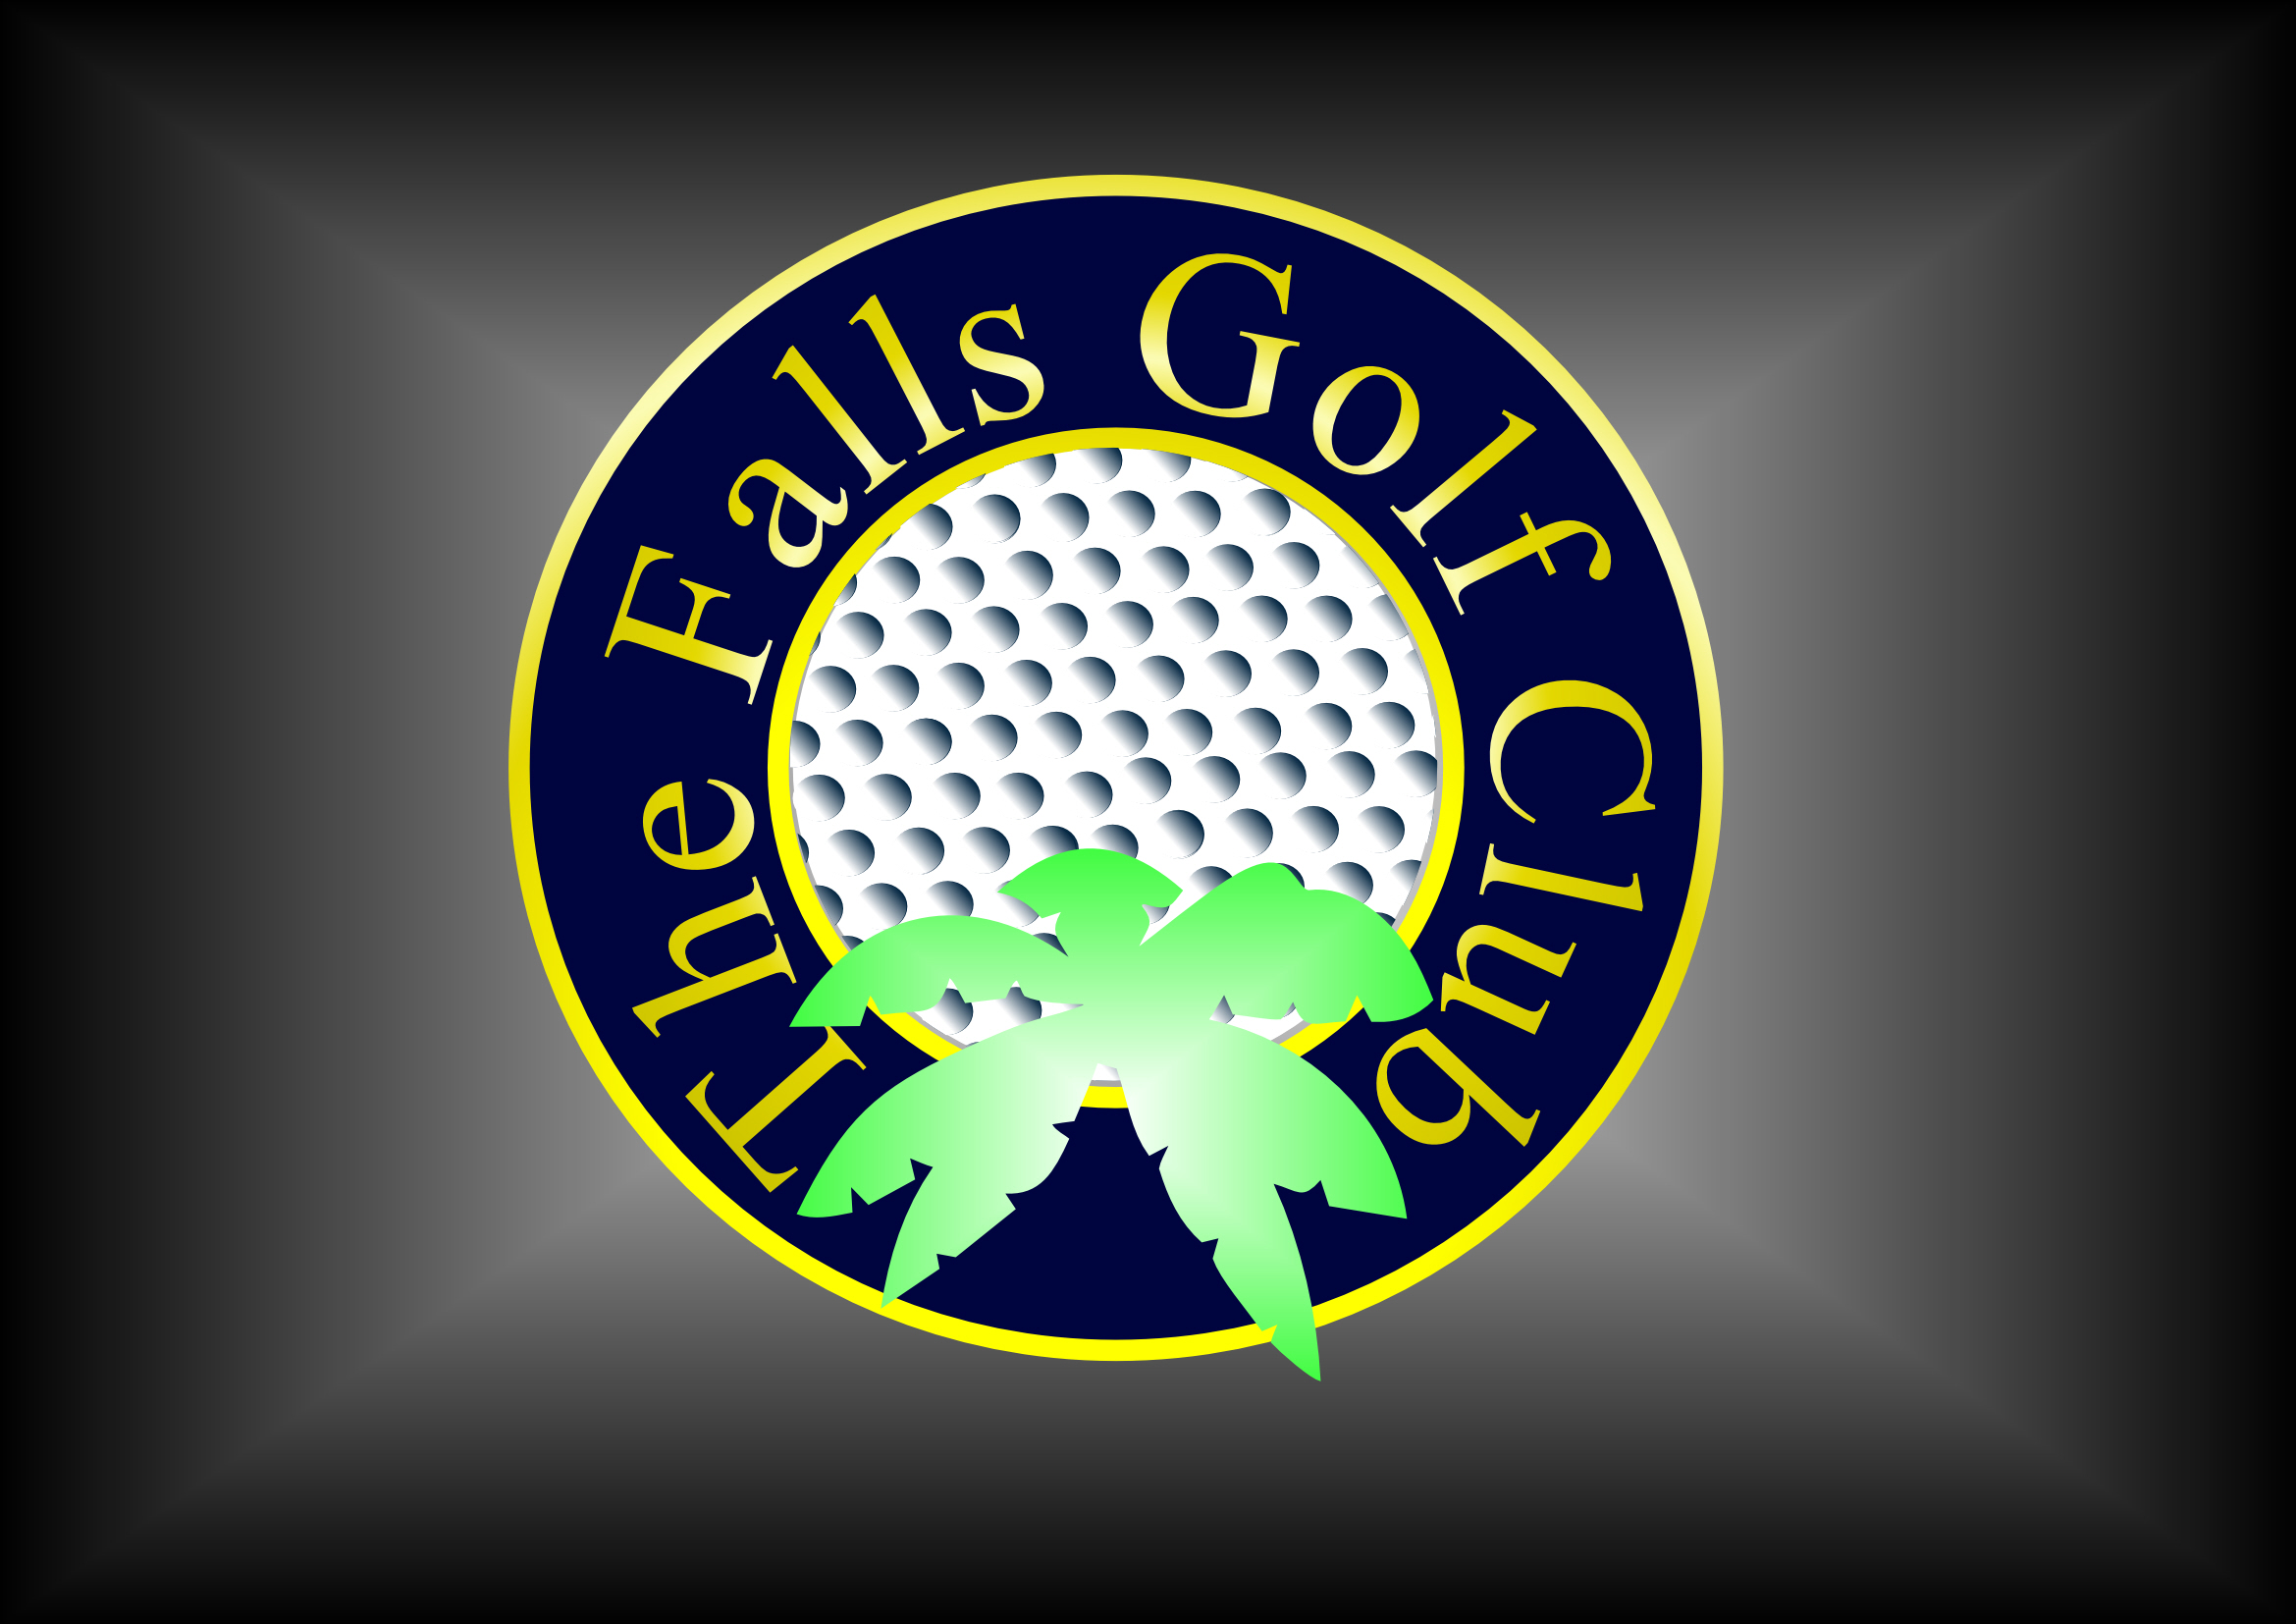 Logo Design by Heri Susanto - Entry No. 153 in the Logo Design Contest The Falls Golf Club Logo Design.